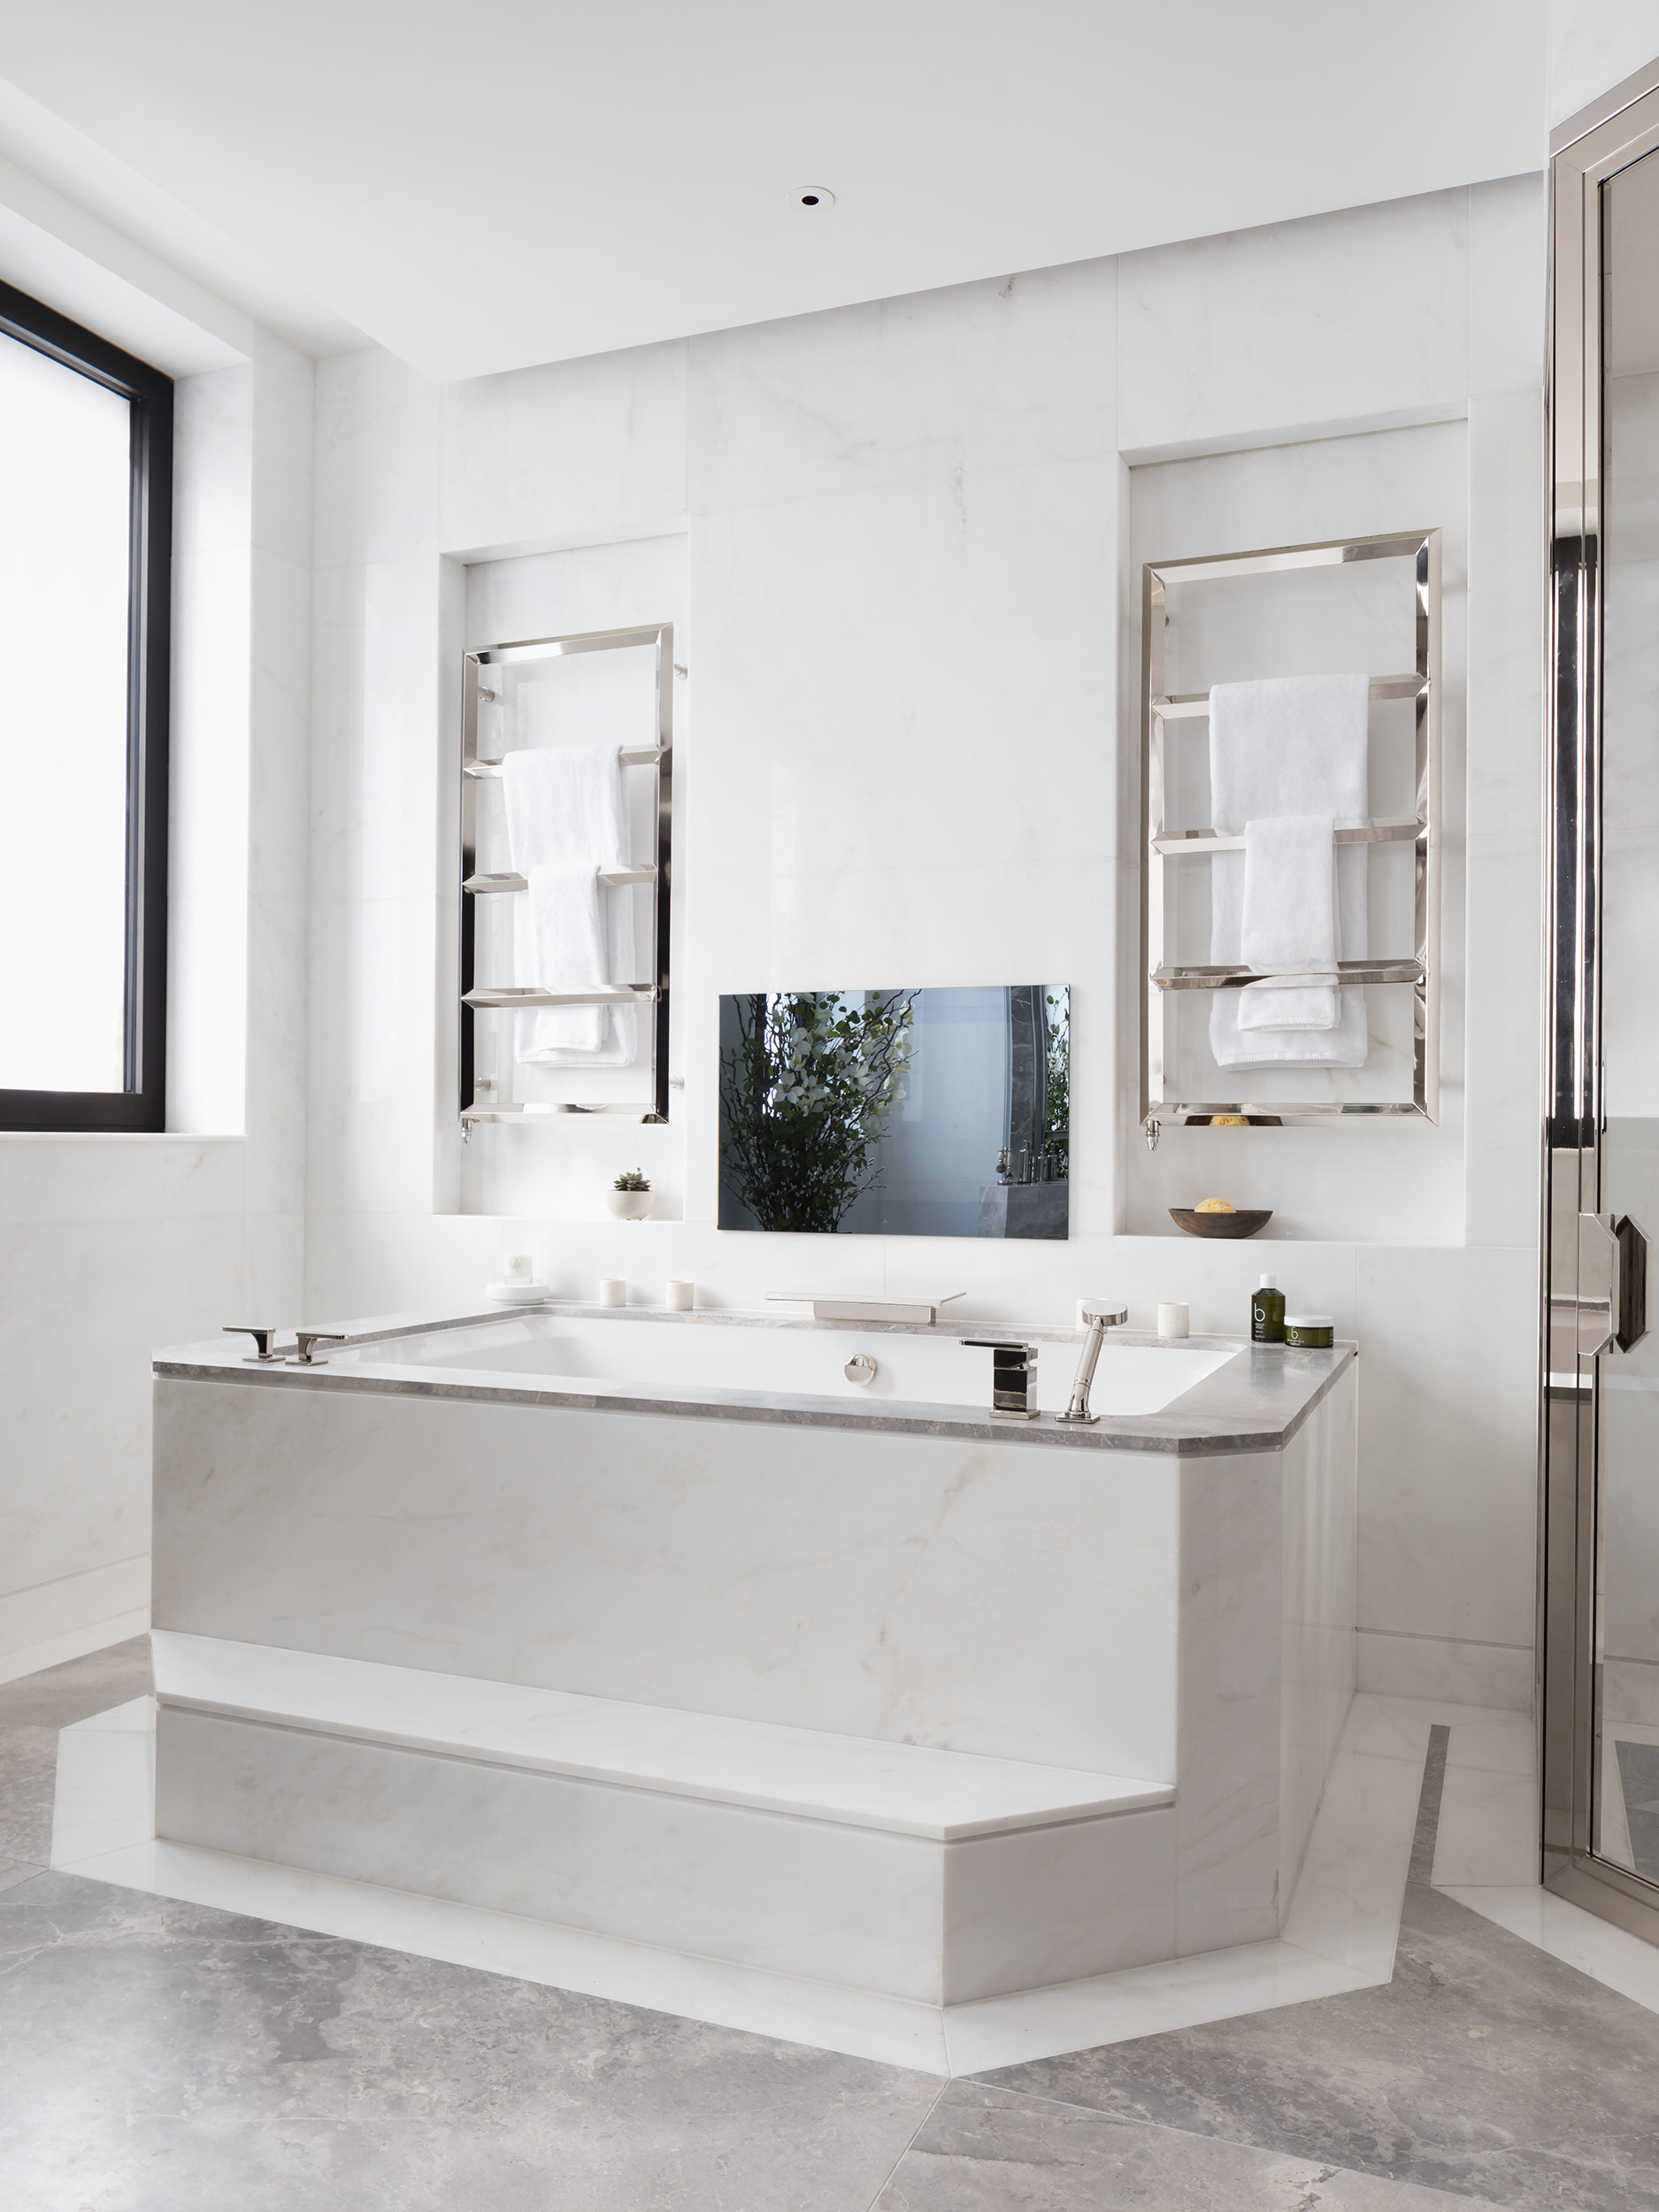 West One Bathrooms Case Studies Luxlo Penthouse Bathroom 1b